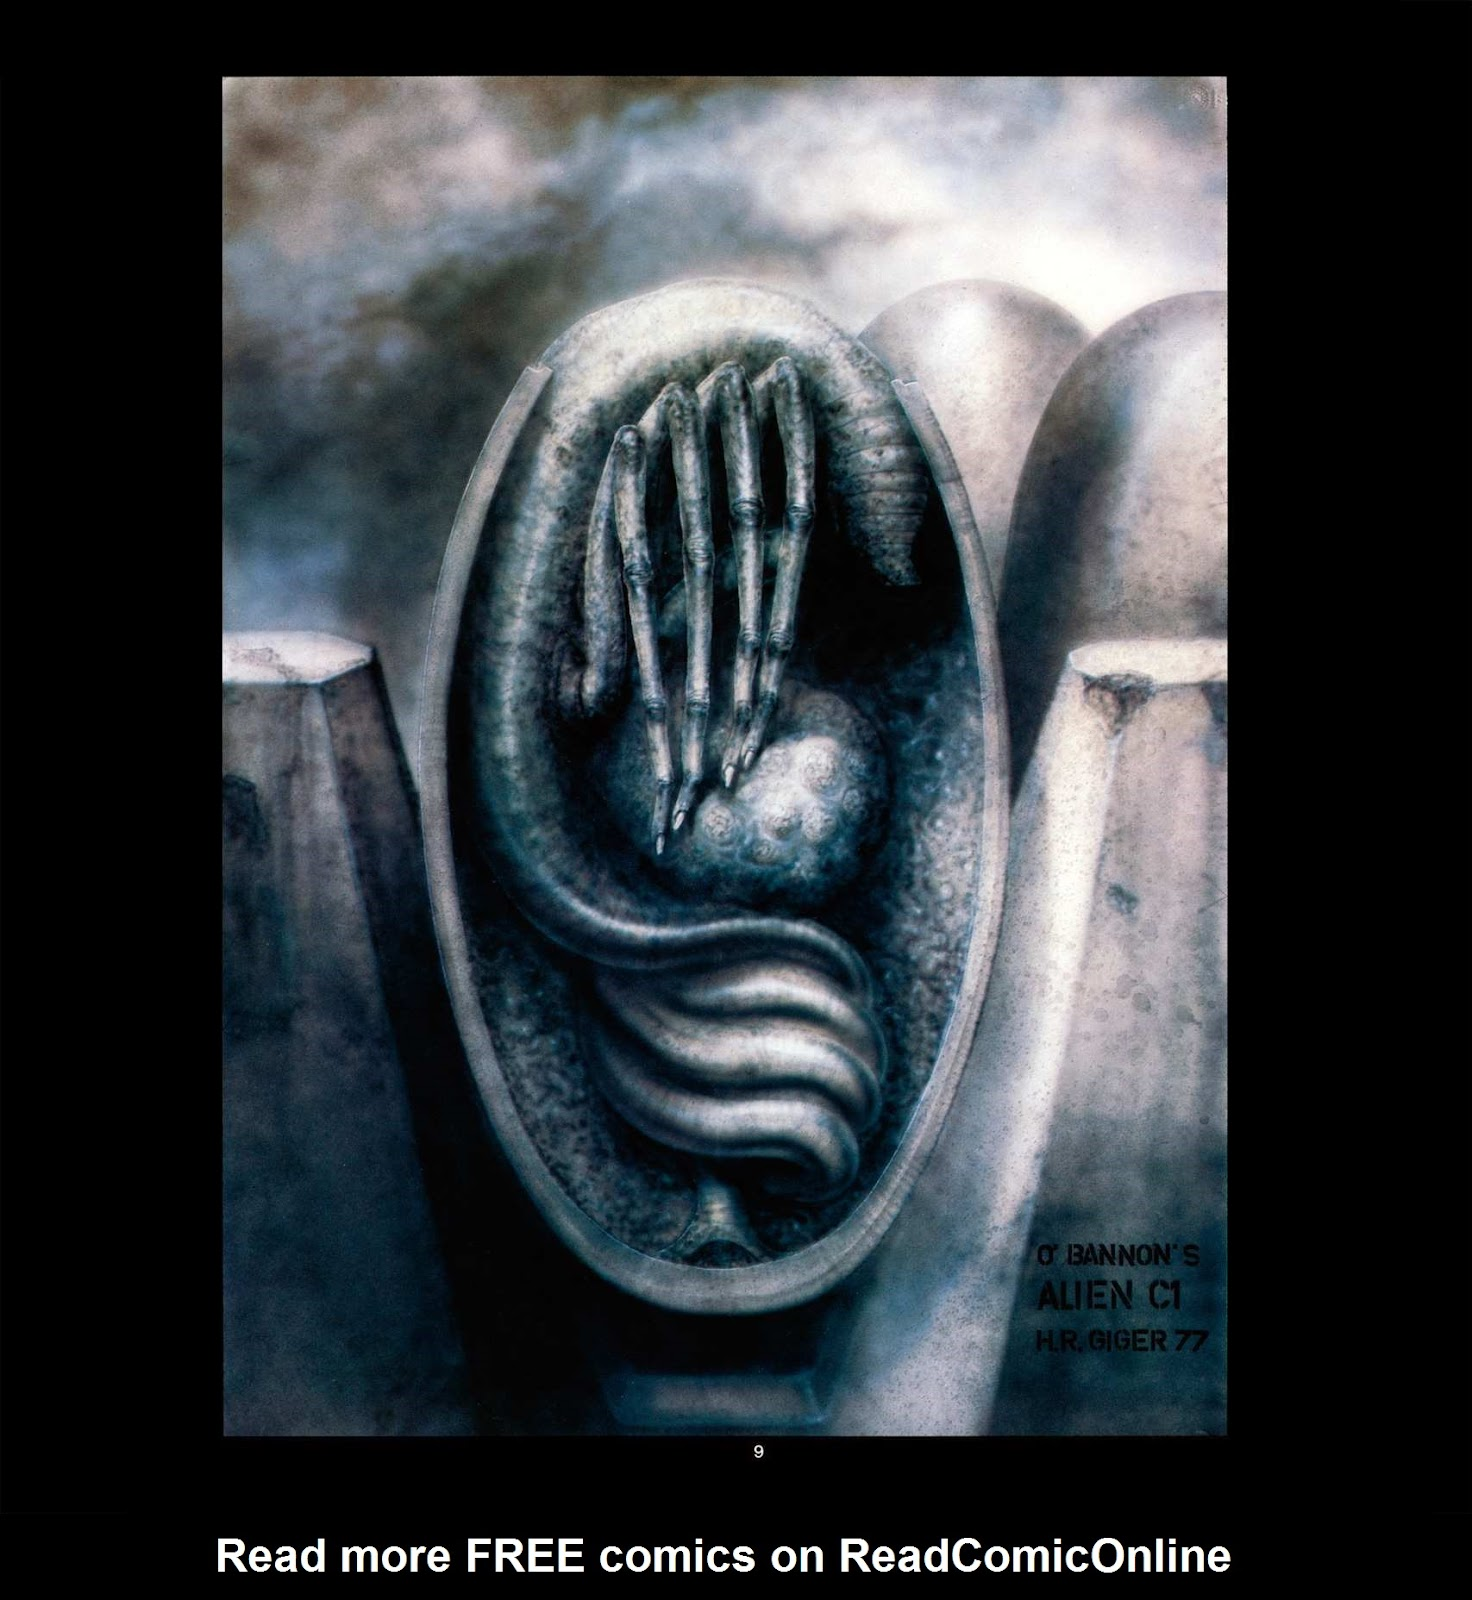 Read online Giger's Alien comic -  Issue # TPB - 11